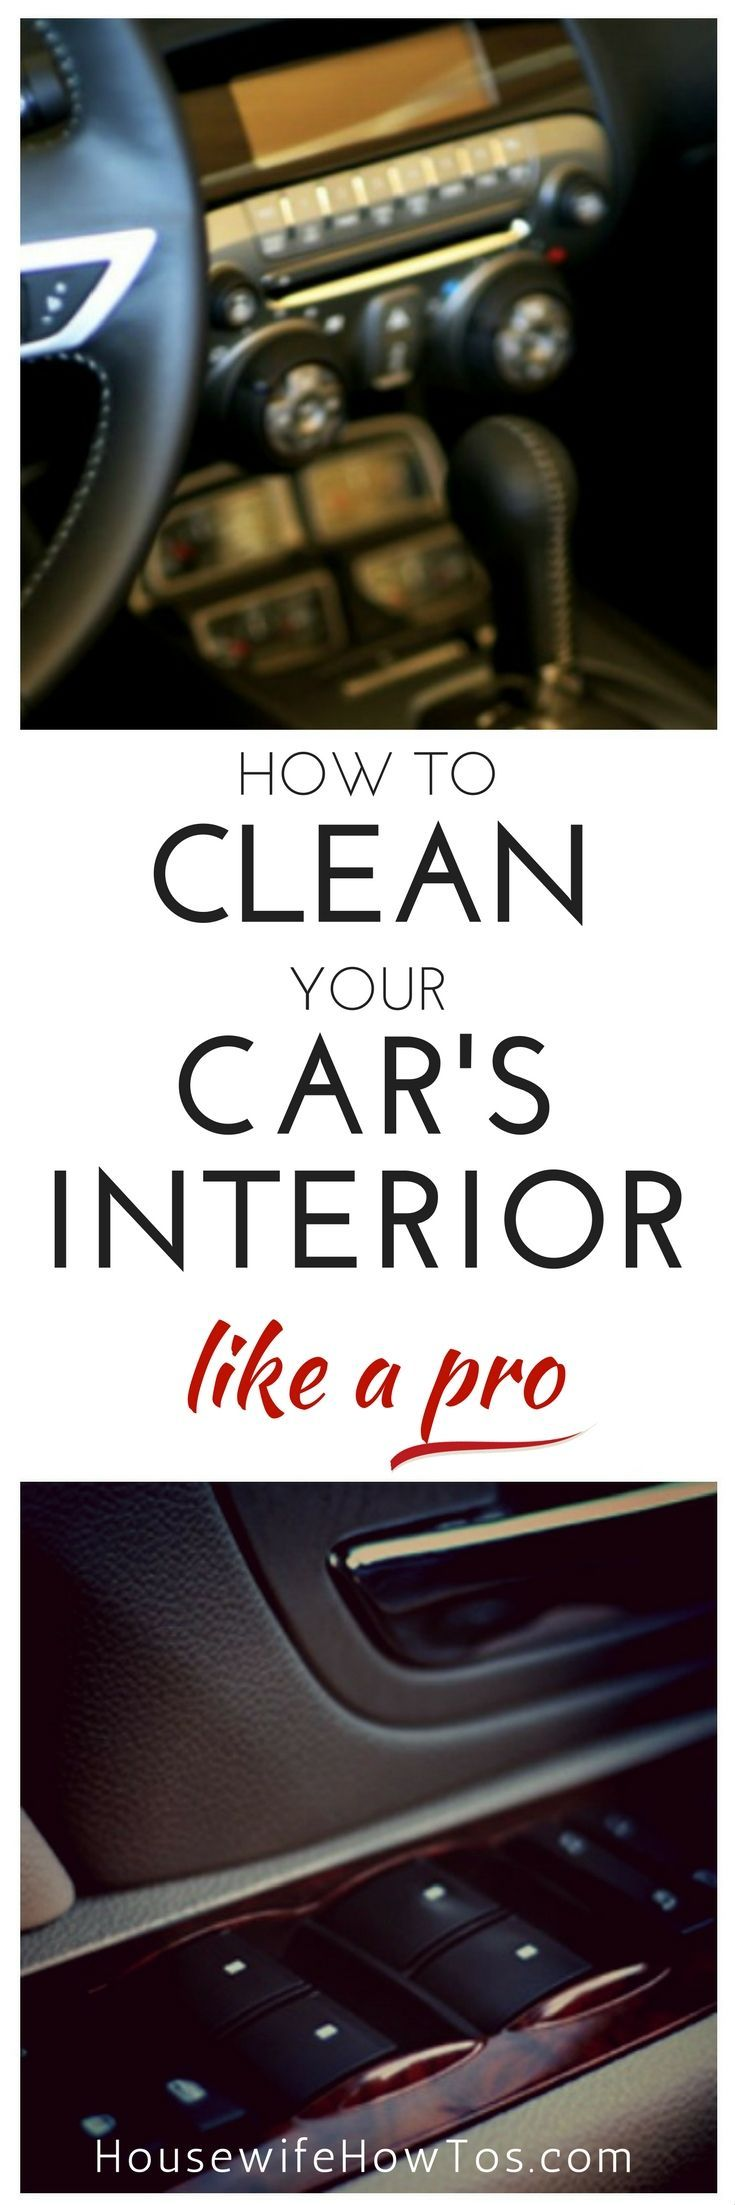 How To Clean Your Car's Interior Like A Pro » Housewife How-Tos